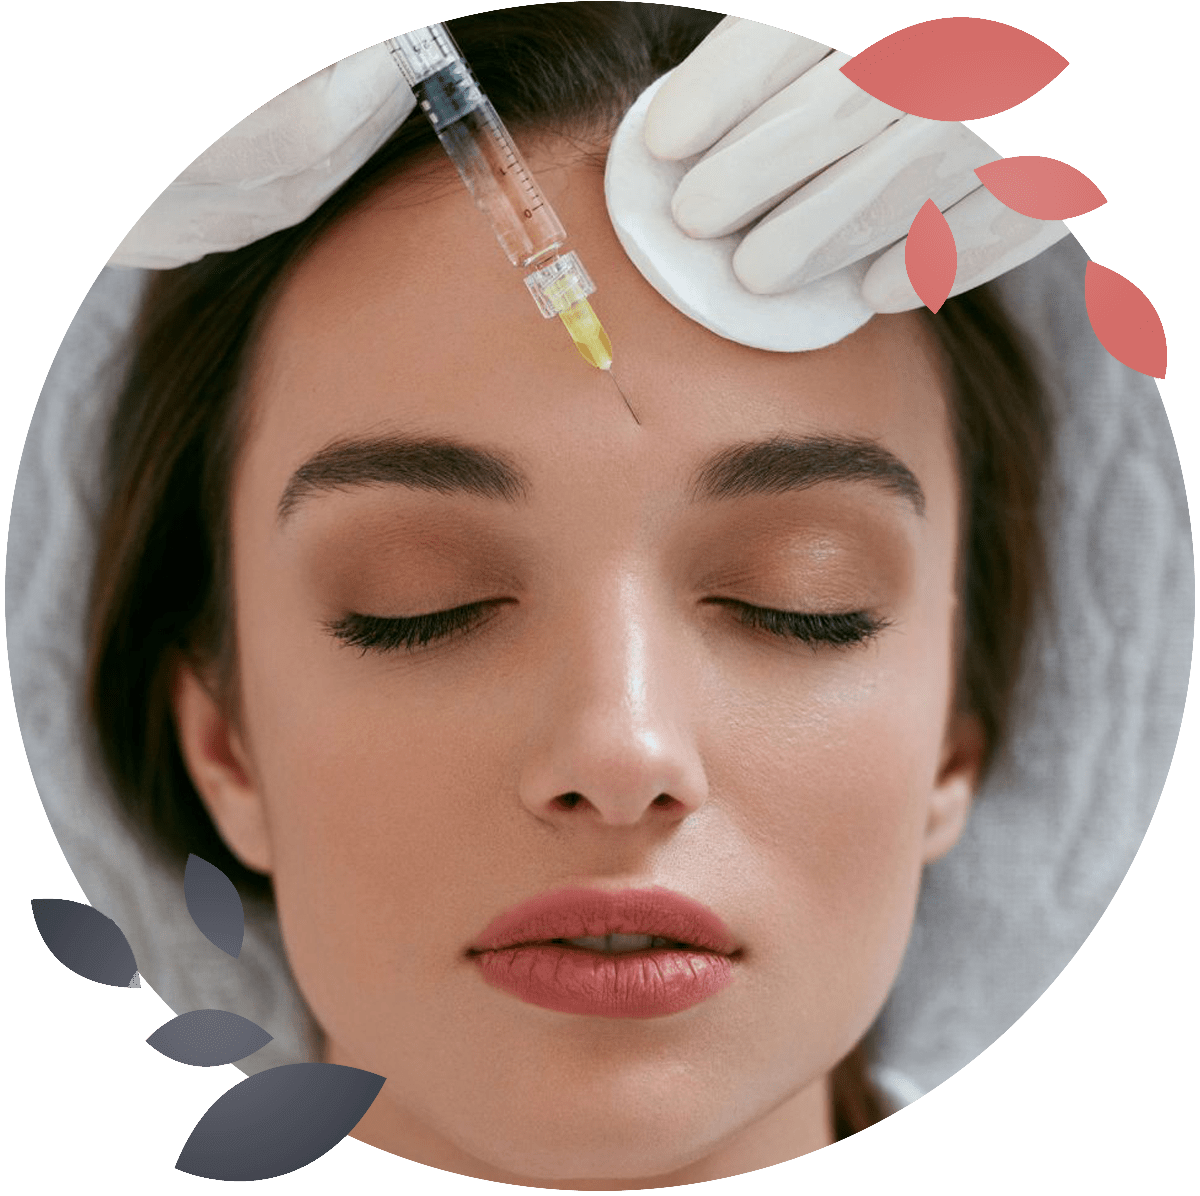 https://elysianaesthetics.net/wp-content/uploads/2020/10/Treatments-FILLERS.png